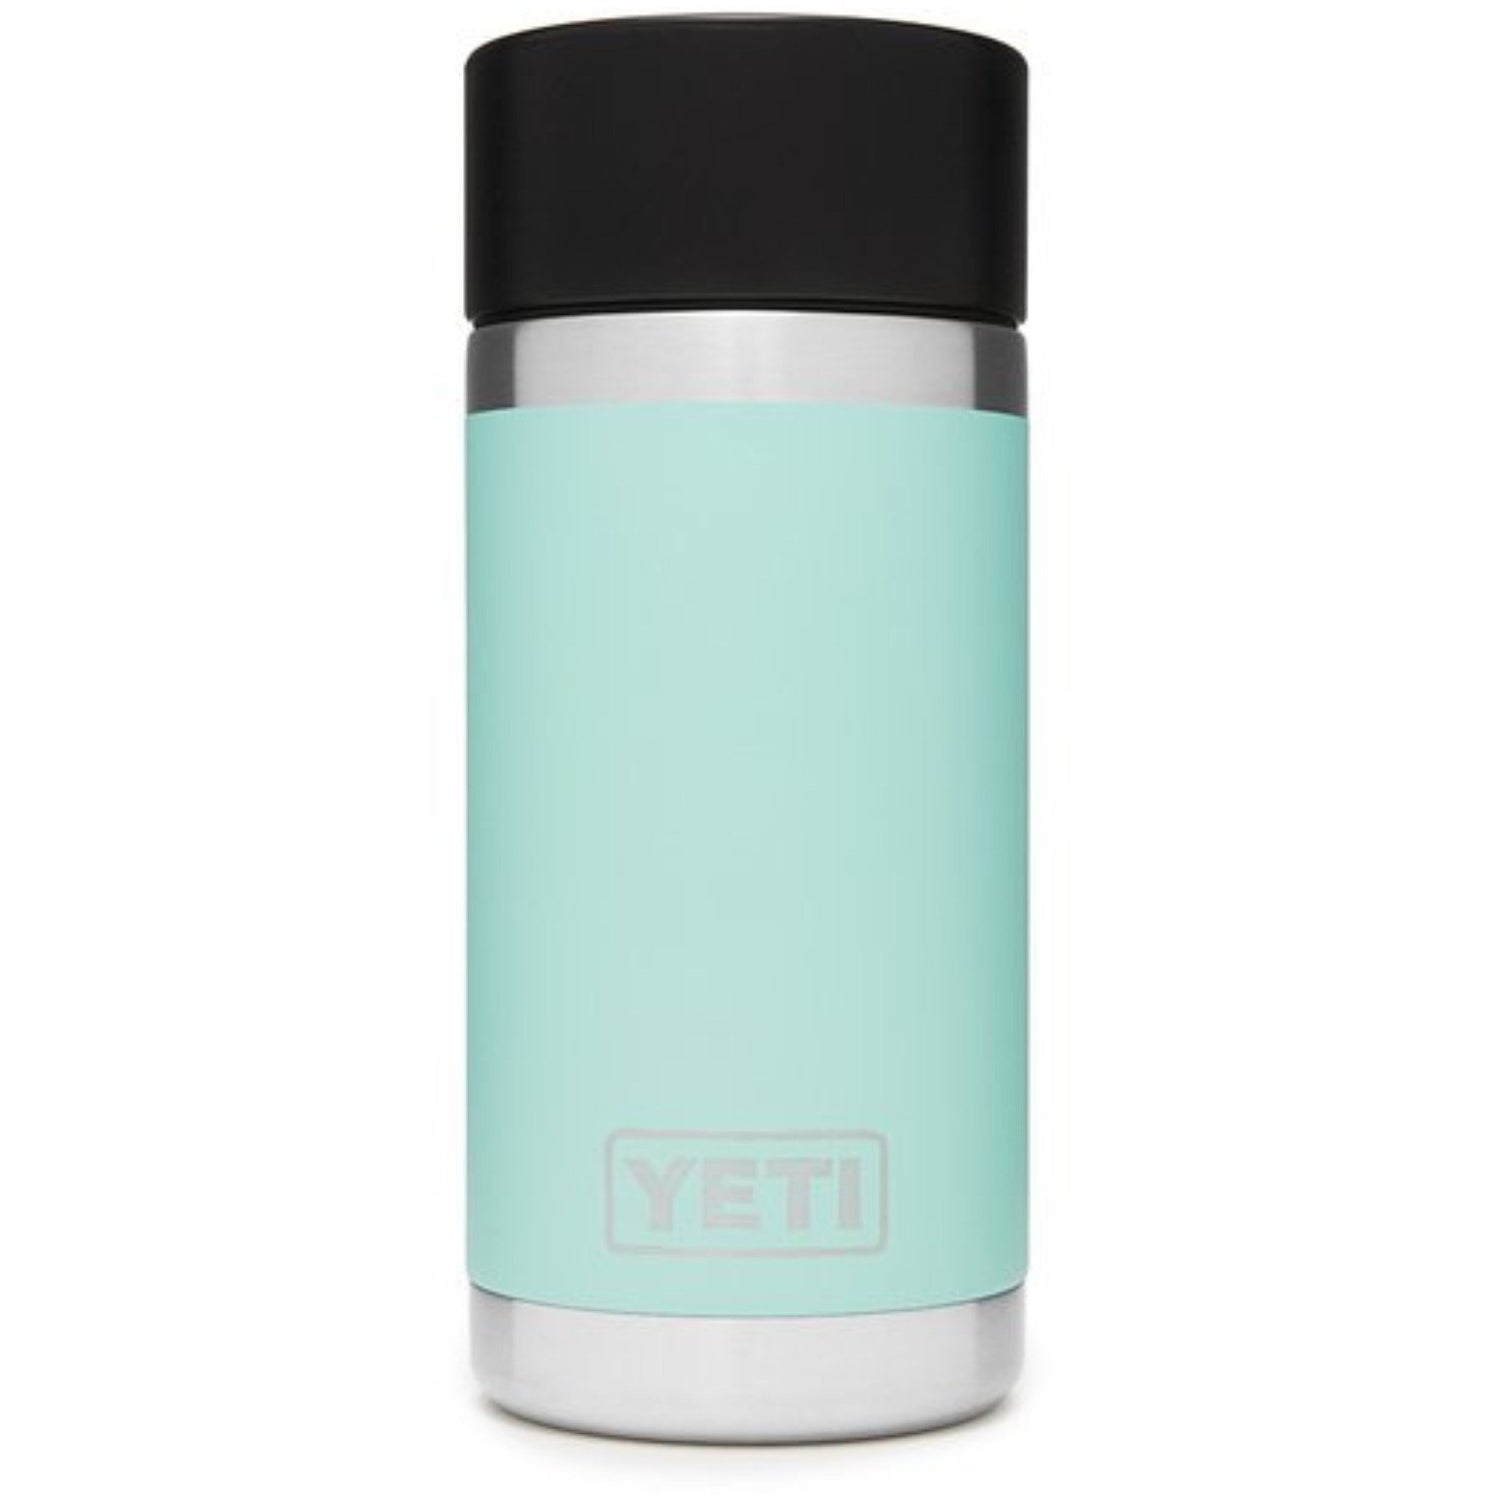 Yeti Rambler 12oz / 355ml Bottle with Hot Shot Cap - Seafoam